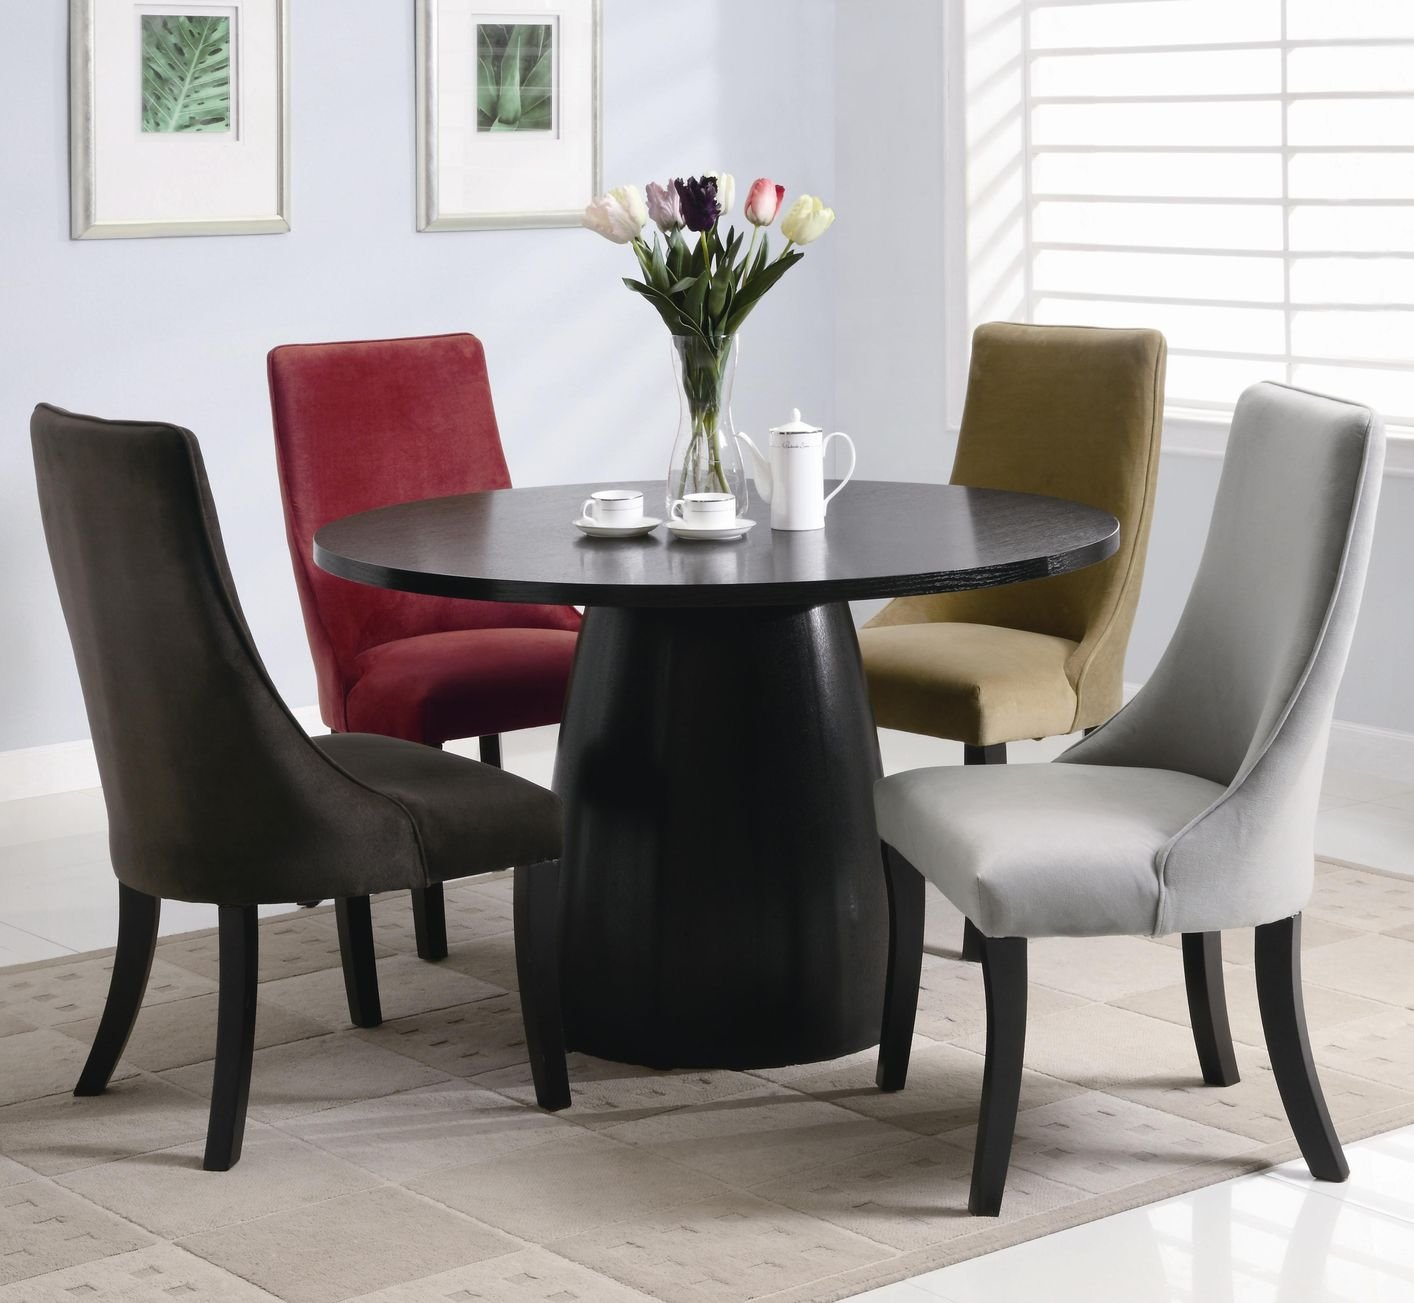 Amhurst Black Satin Wood Dining Table